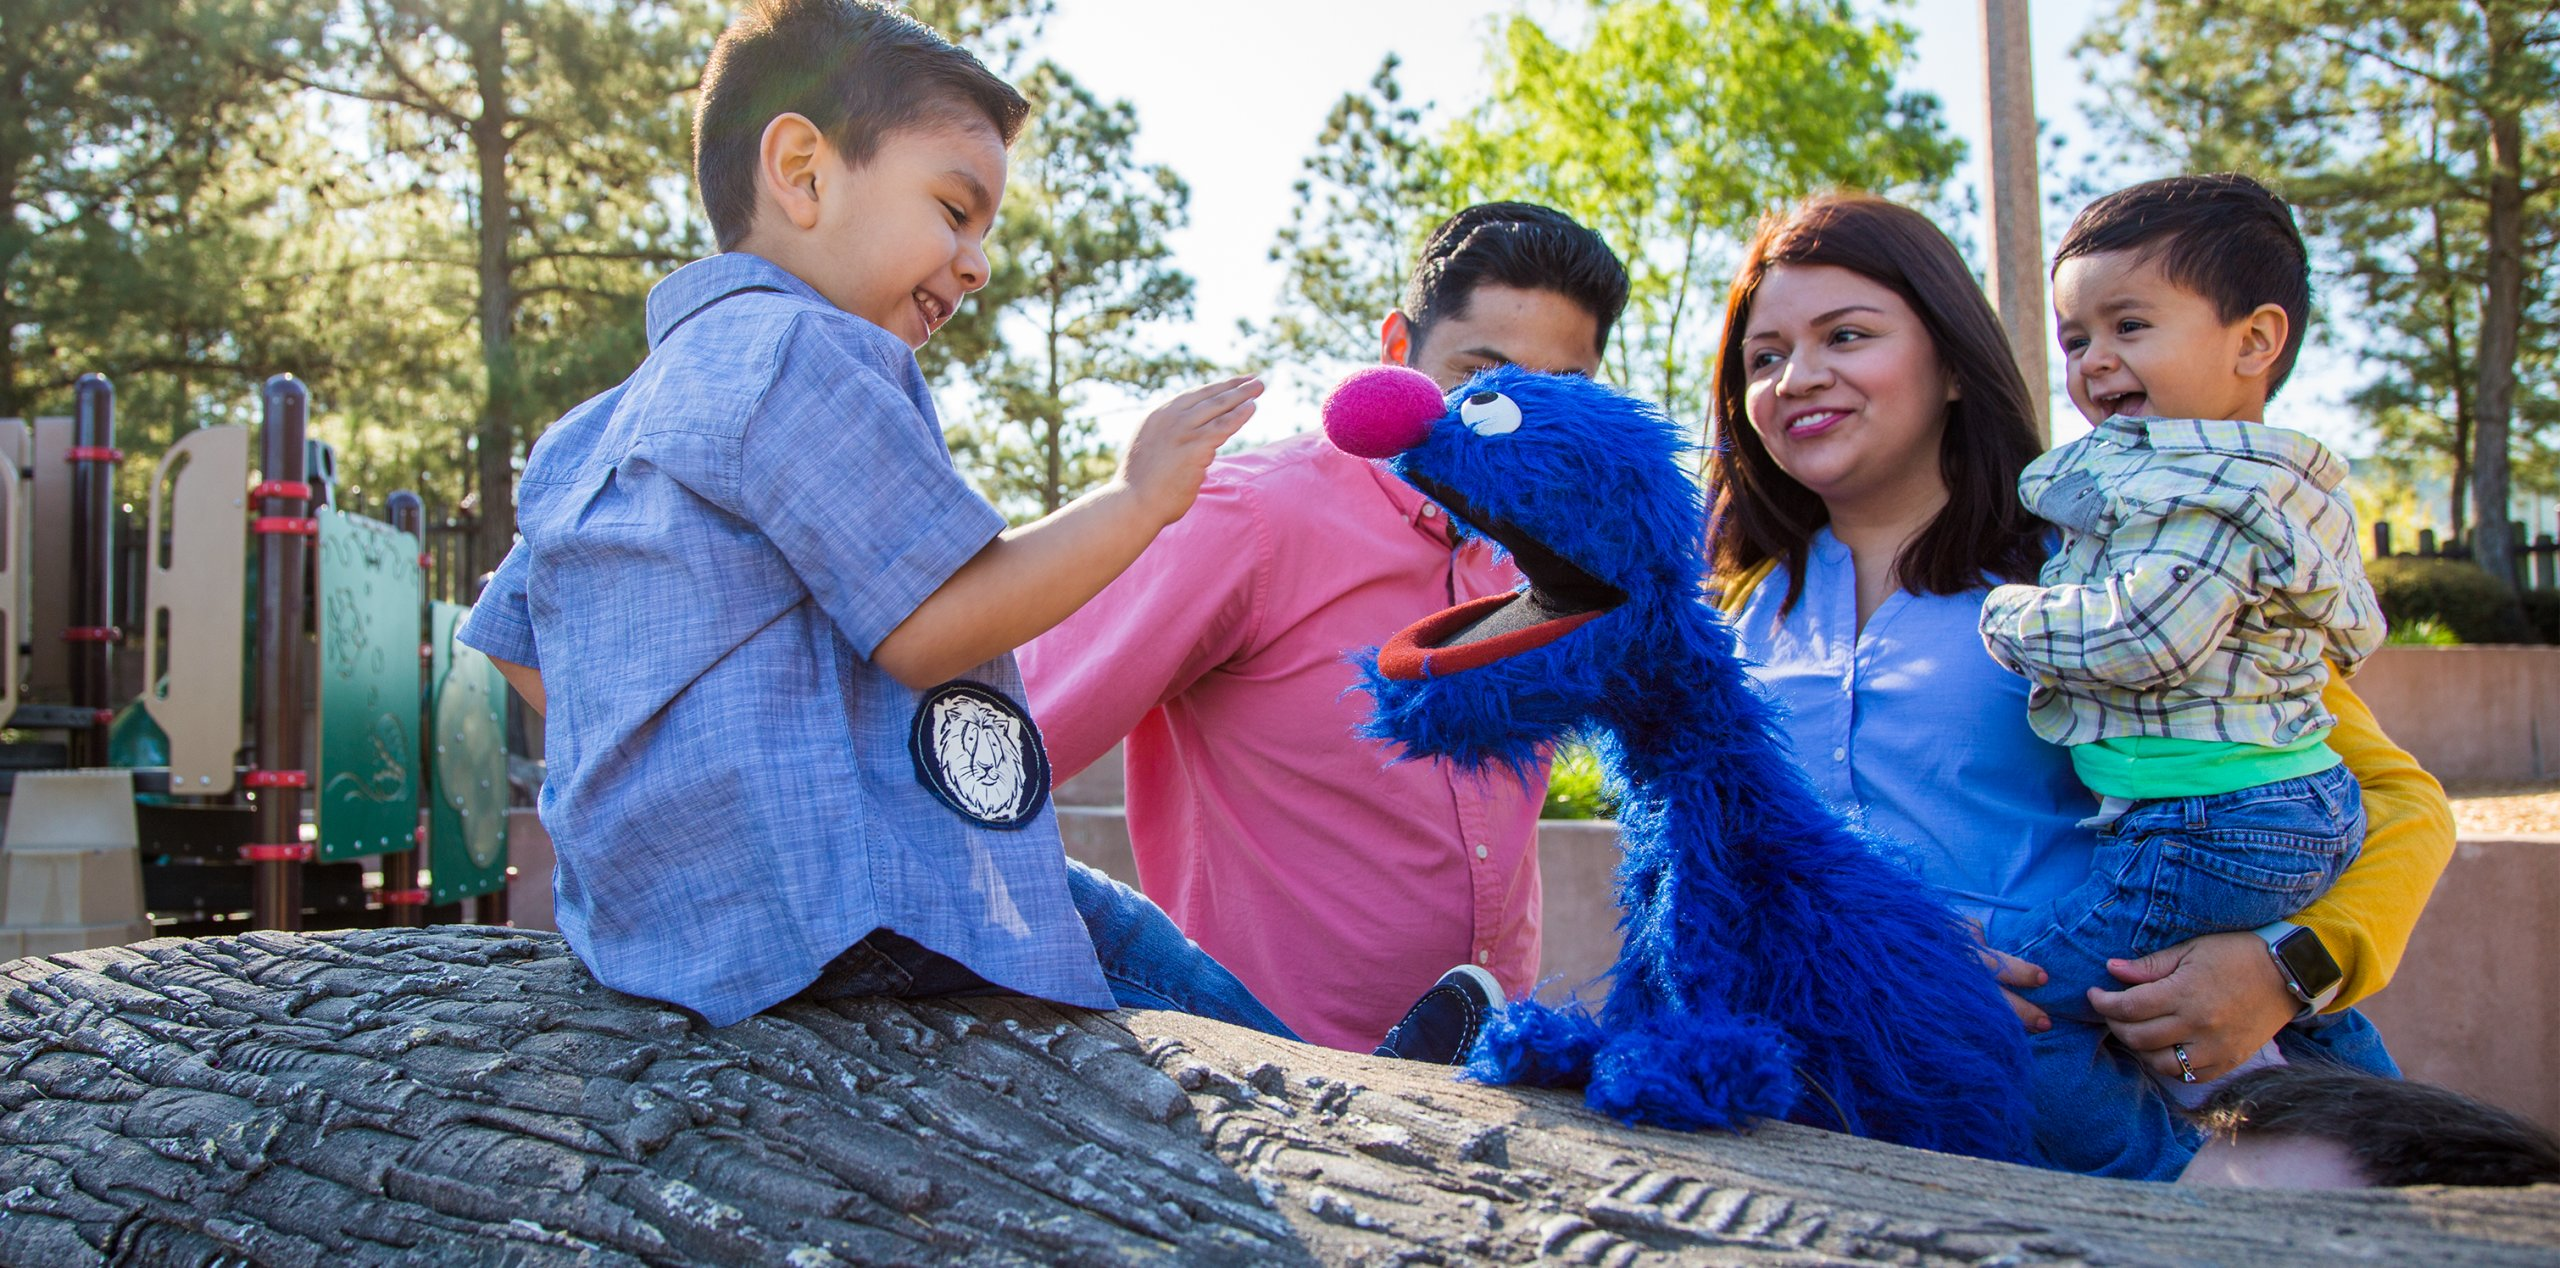 Grover with a family